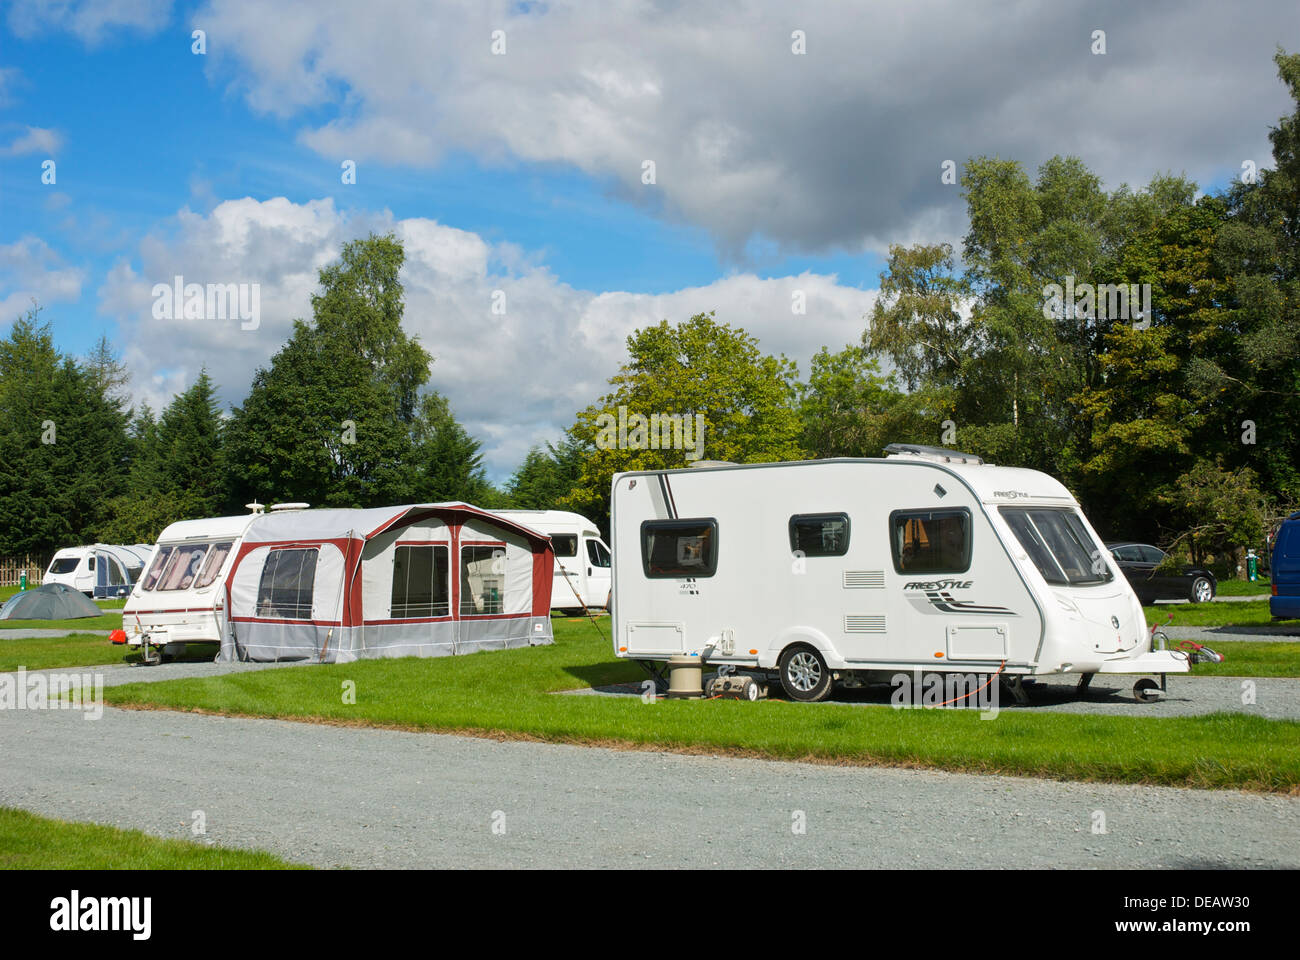 The Croft campsite in the village of Hawkshead, Lake District National Park, Cumbria, England UK - Stock Image